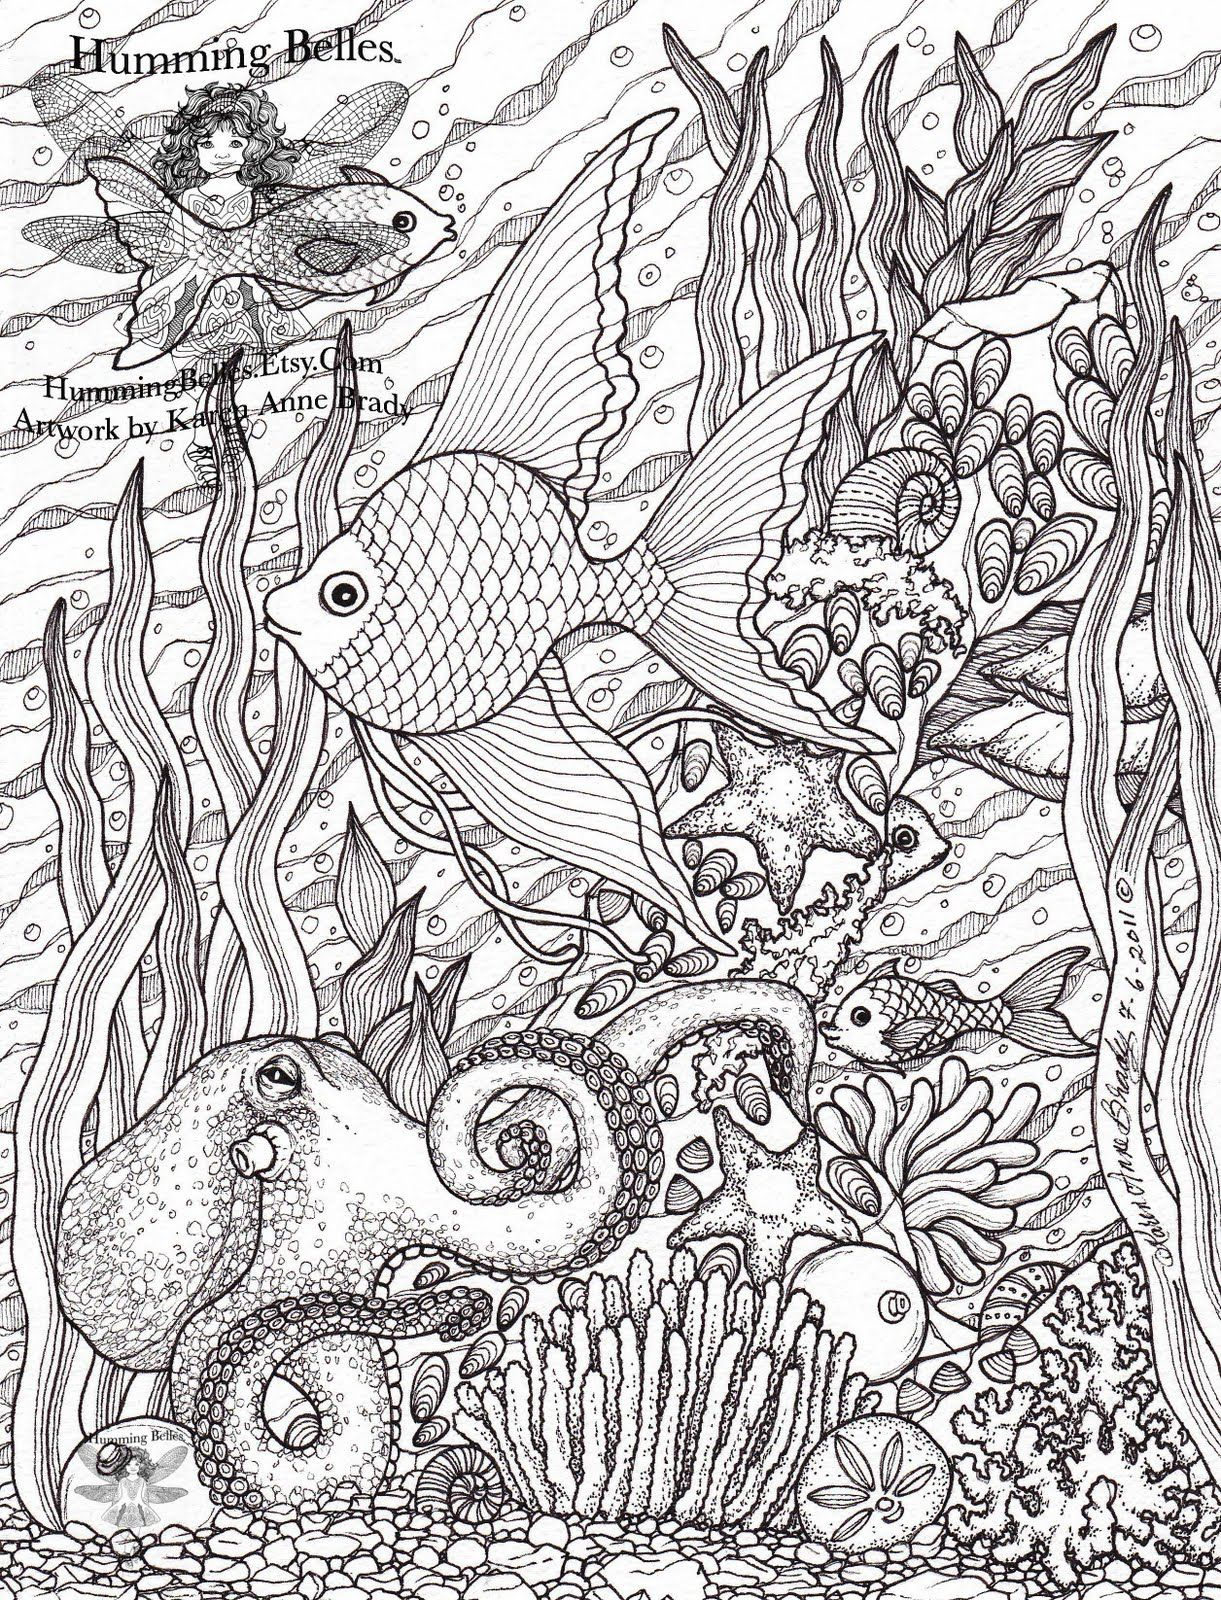 Intricate Coloring Pages for Adults | ... Humming Belles ...